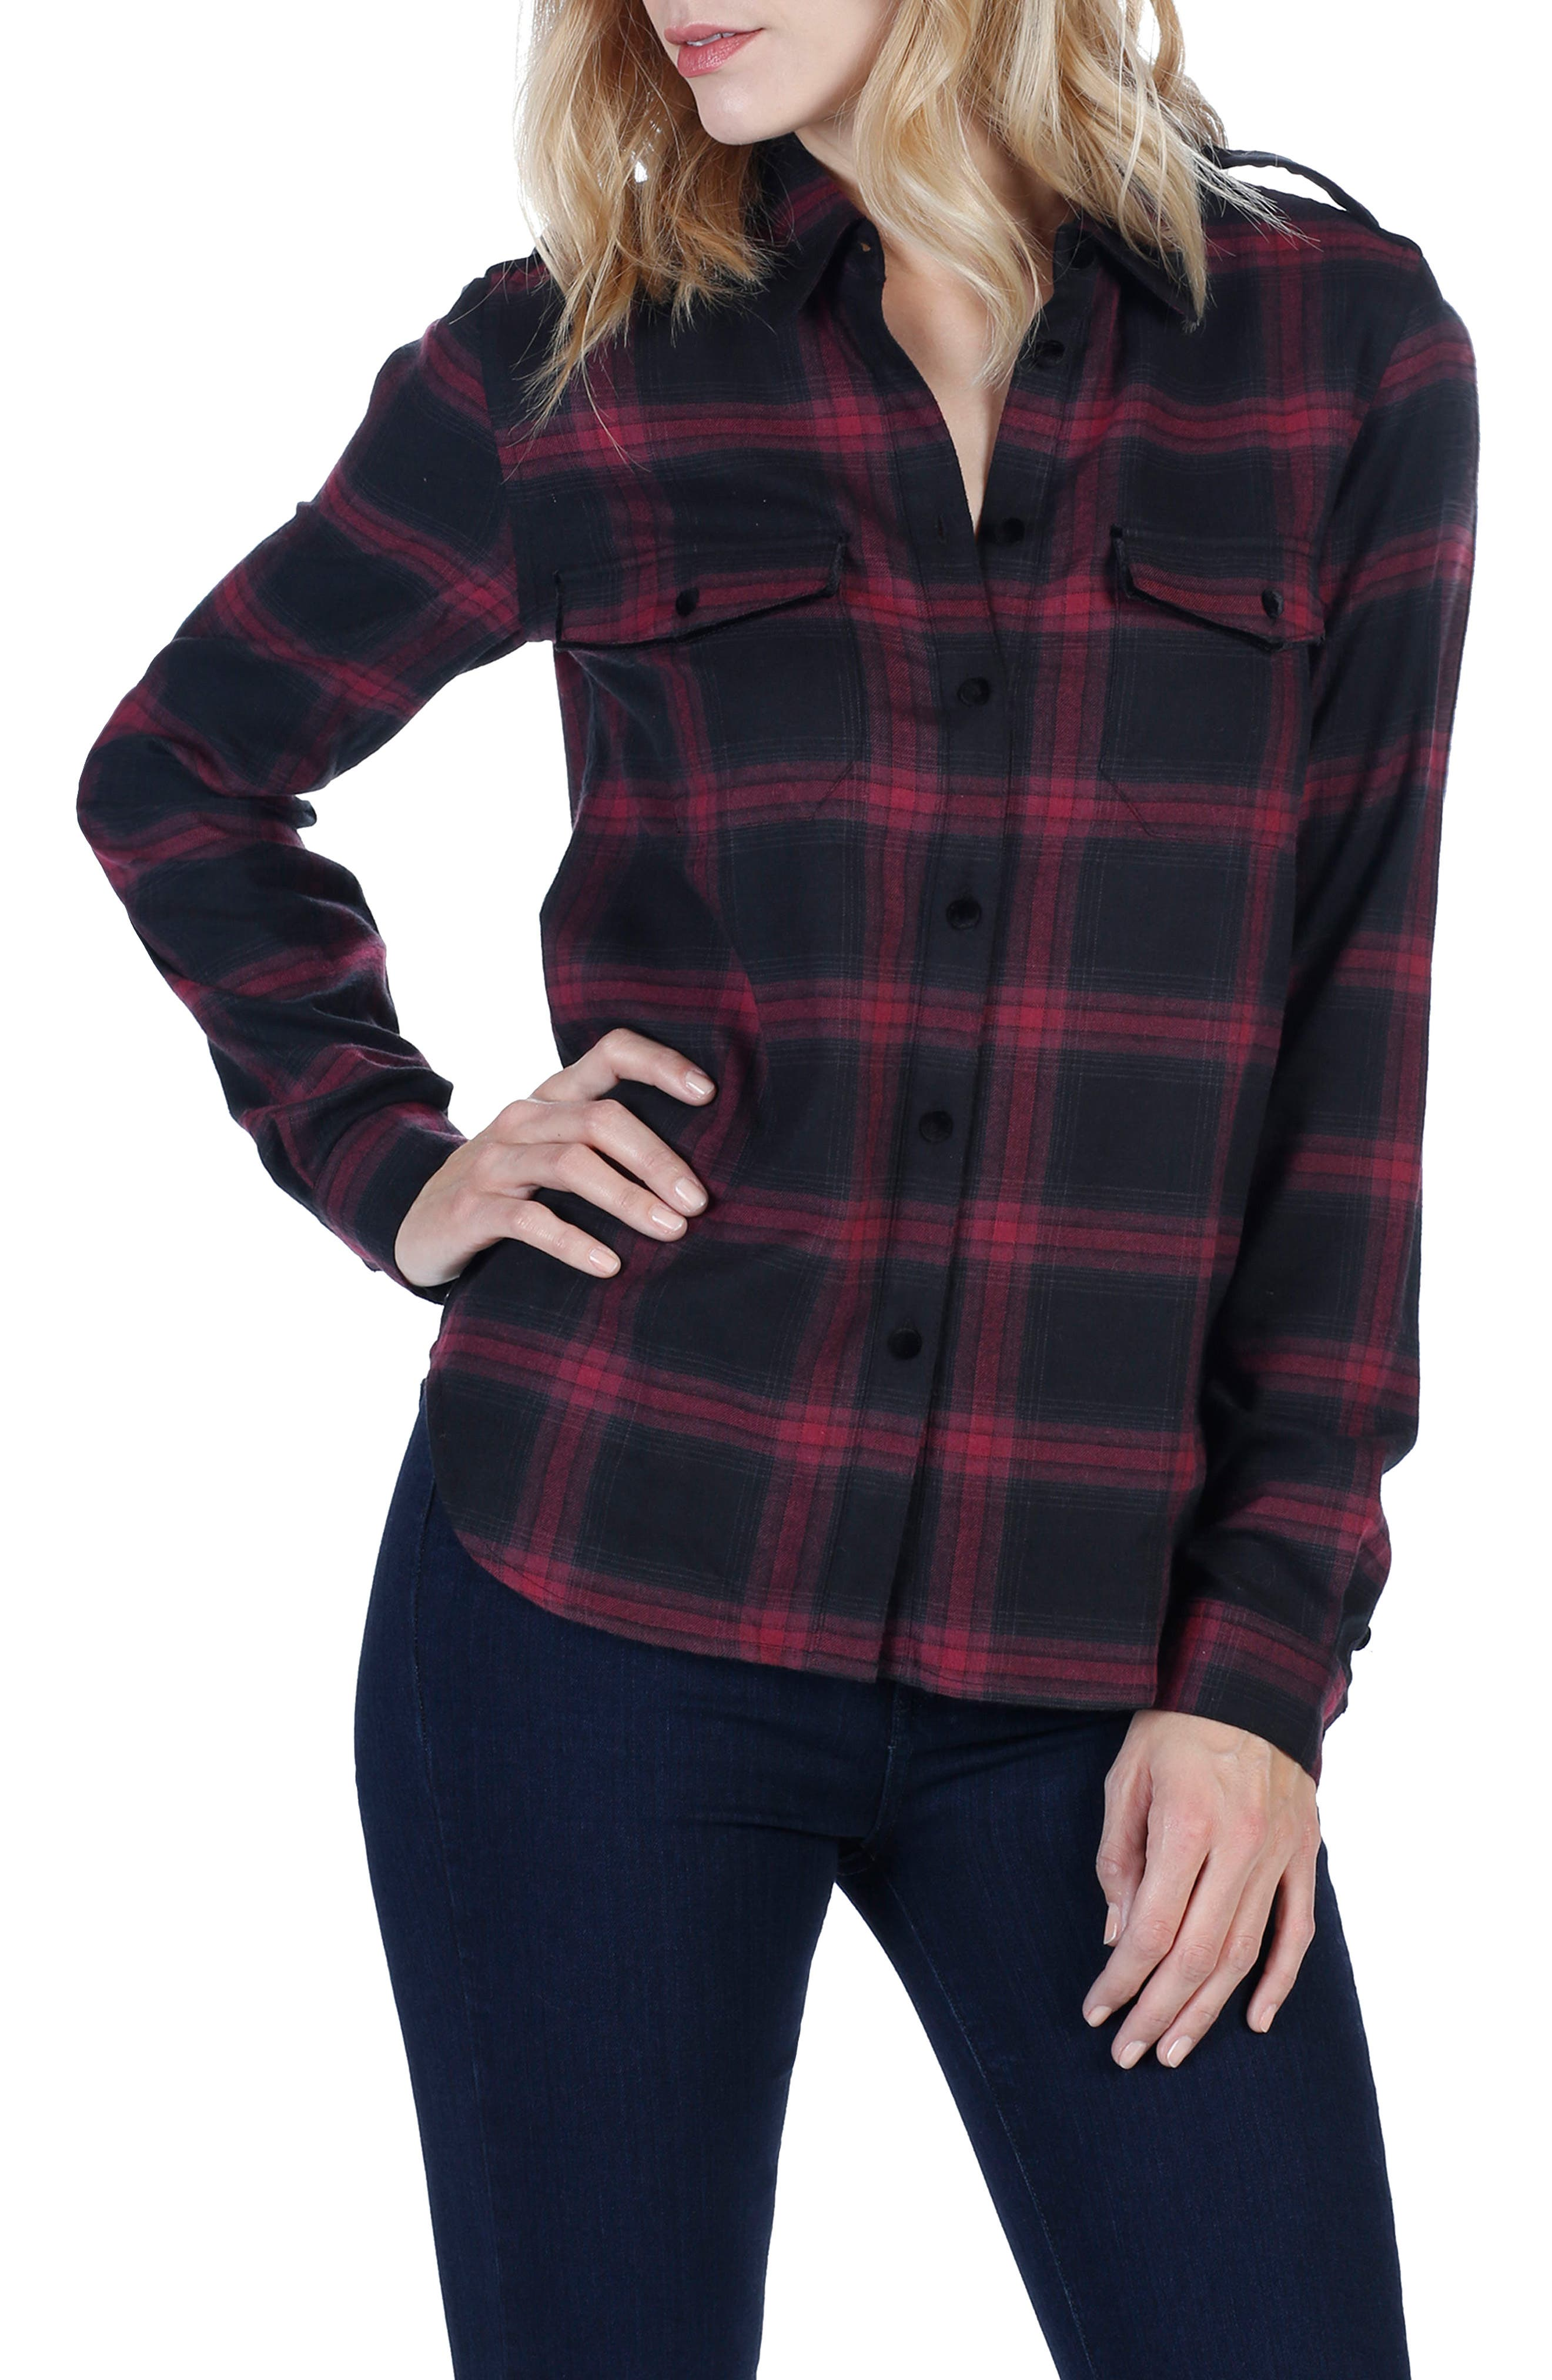 Adilene Plaid Shirt,                             Alternate thumbnail 3, color,                             True Black/ Dark Magenta